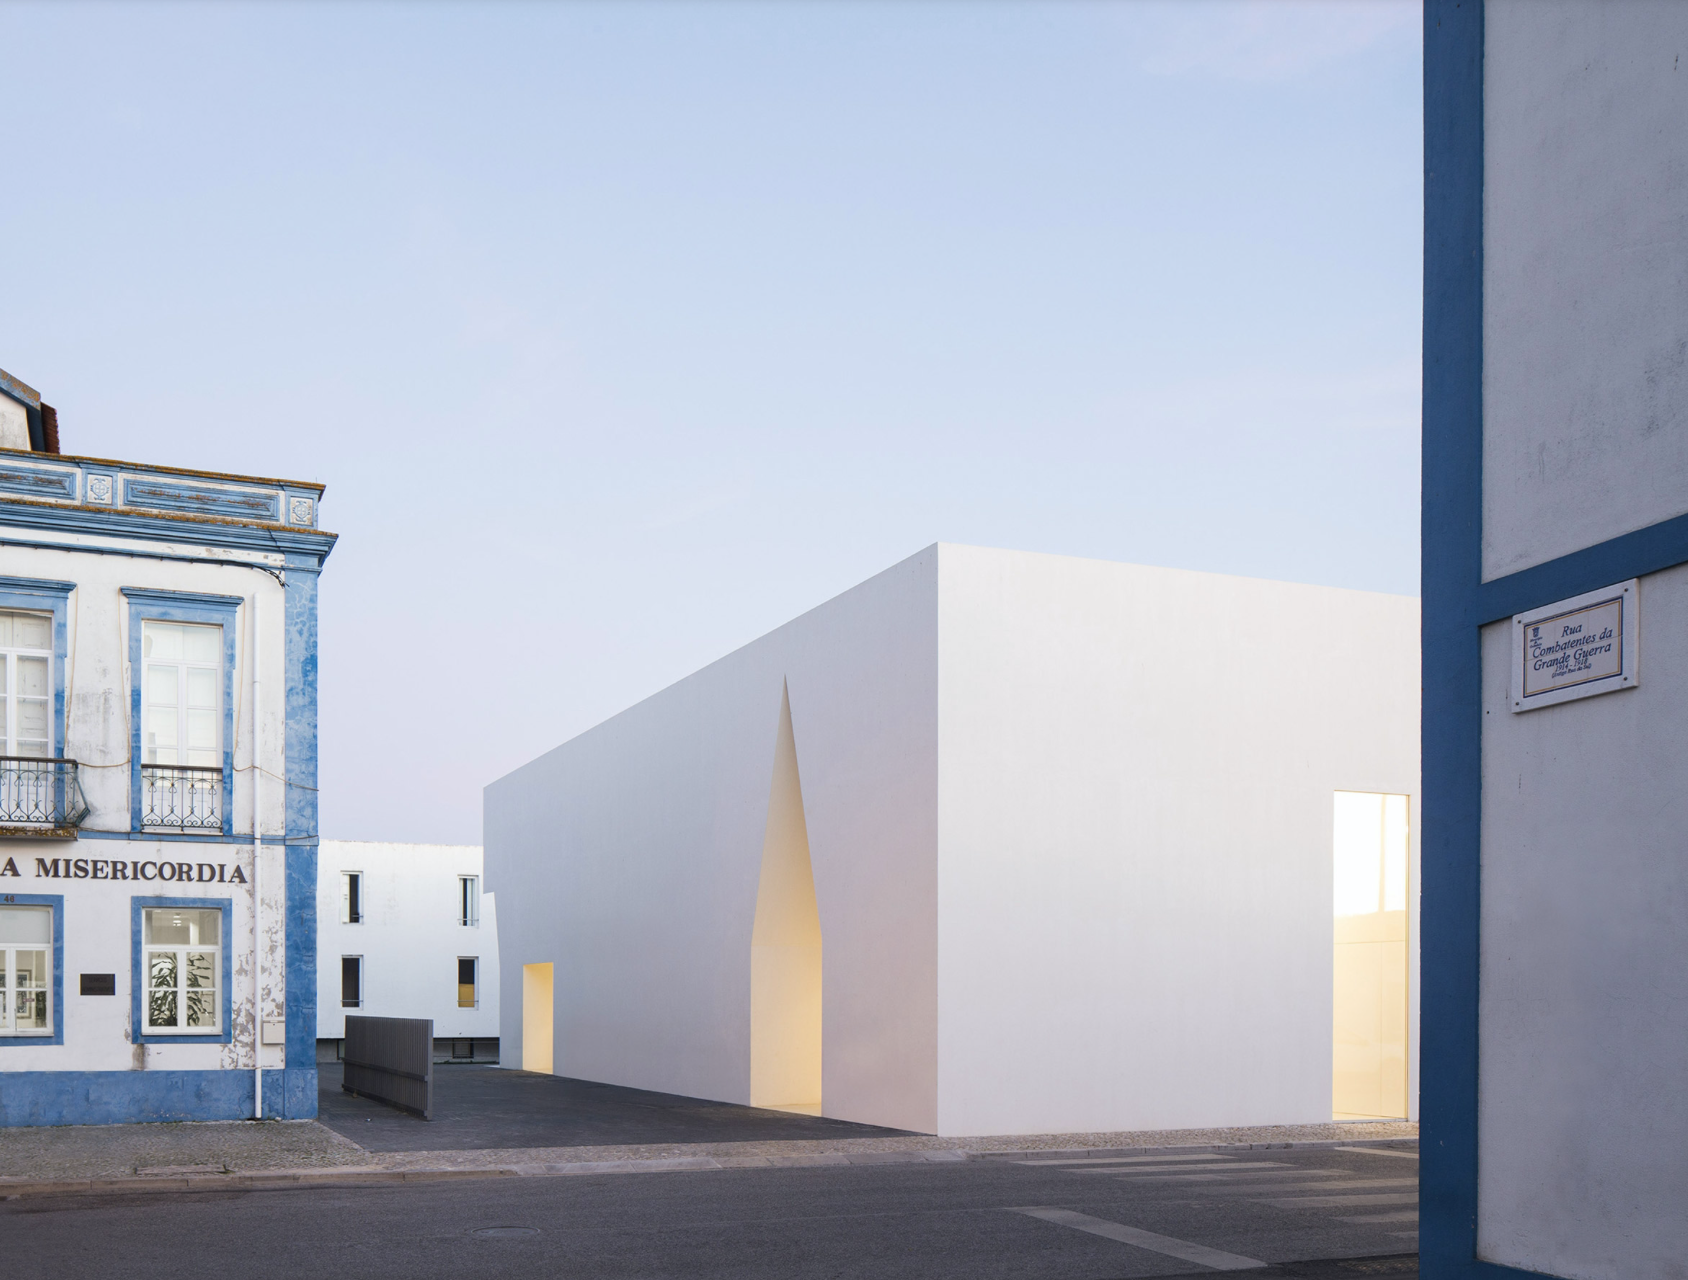 Grândola Meeting Center in Portugal. Image by Nelson Garrido